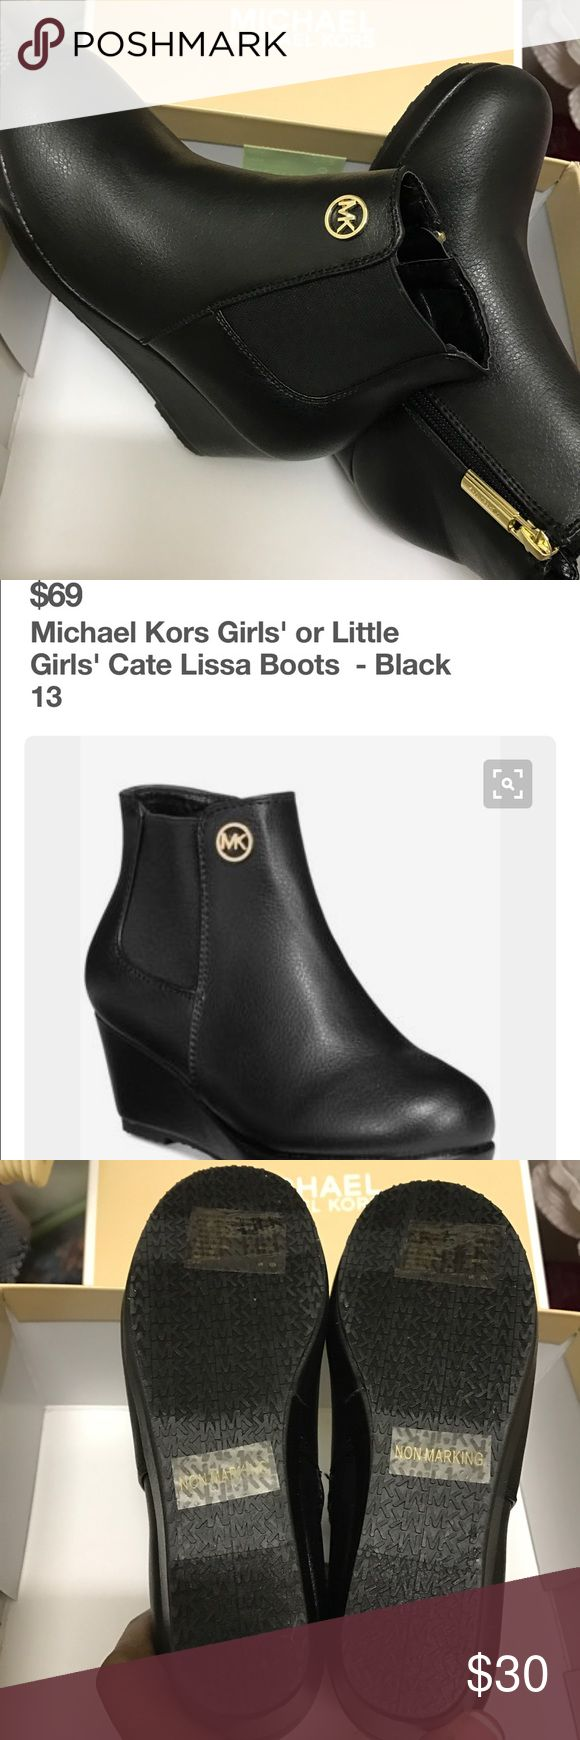 👞Michael Kors👞 Girls Cate' Lissa Black Boots NWT- Michael Kors, Girls Cate' Lissa. Size 13, Black Boots. Brand new, never worn. Comes in original box. Purchased from Dillard's for my little girl but they are too small now for her. Bundle and save. Please feel free to make an offer, using the offer tab. Thank you and happy shopping. MICHAEL Michael Kors Shoes Boots